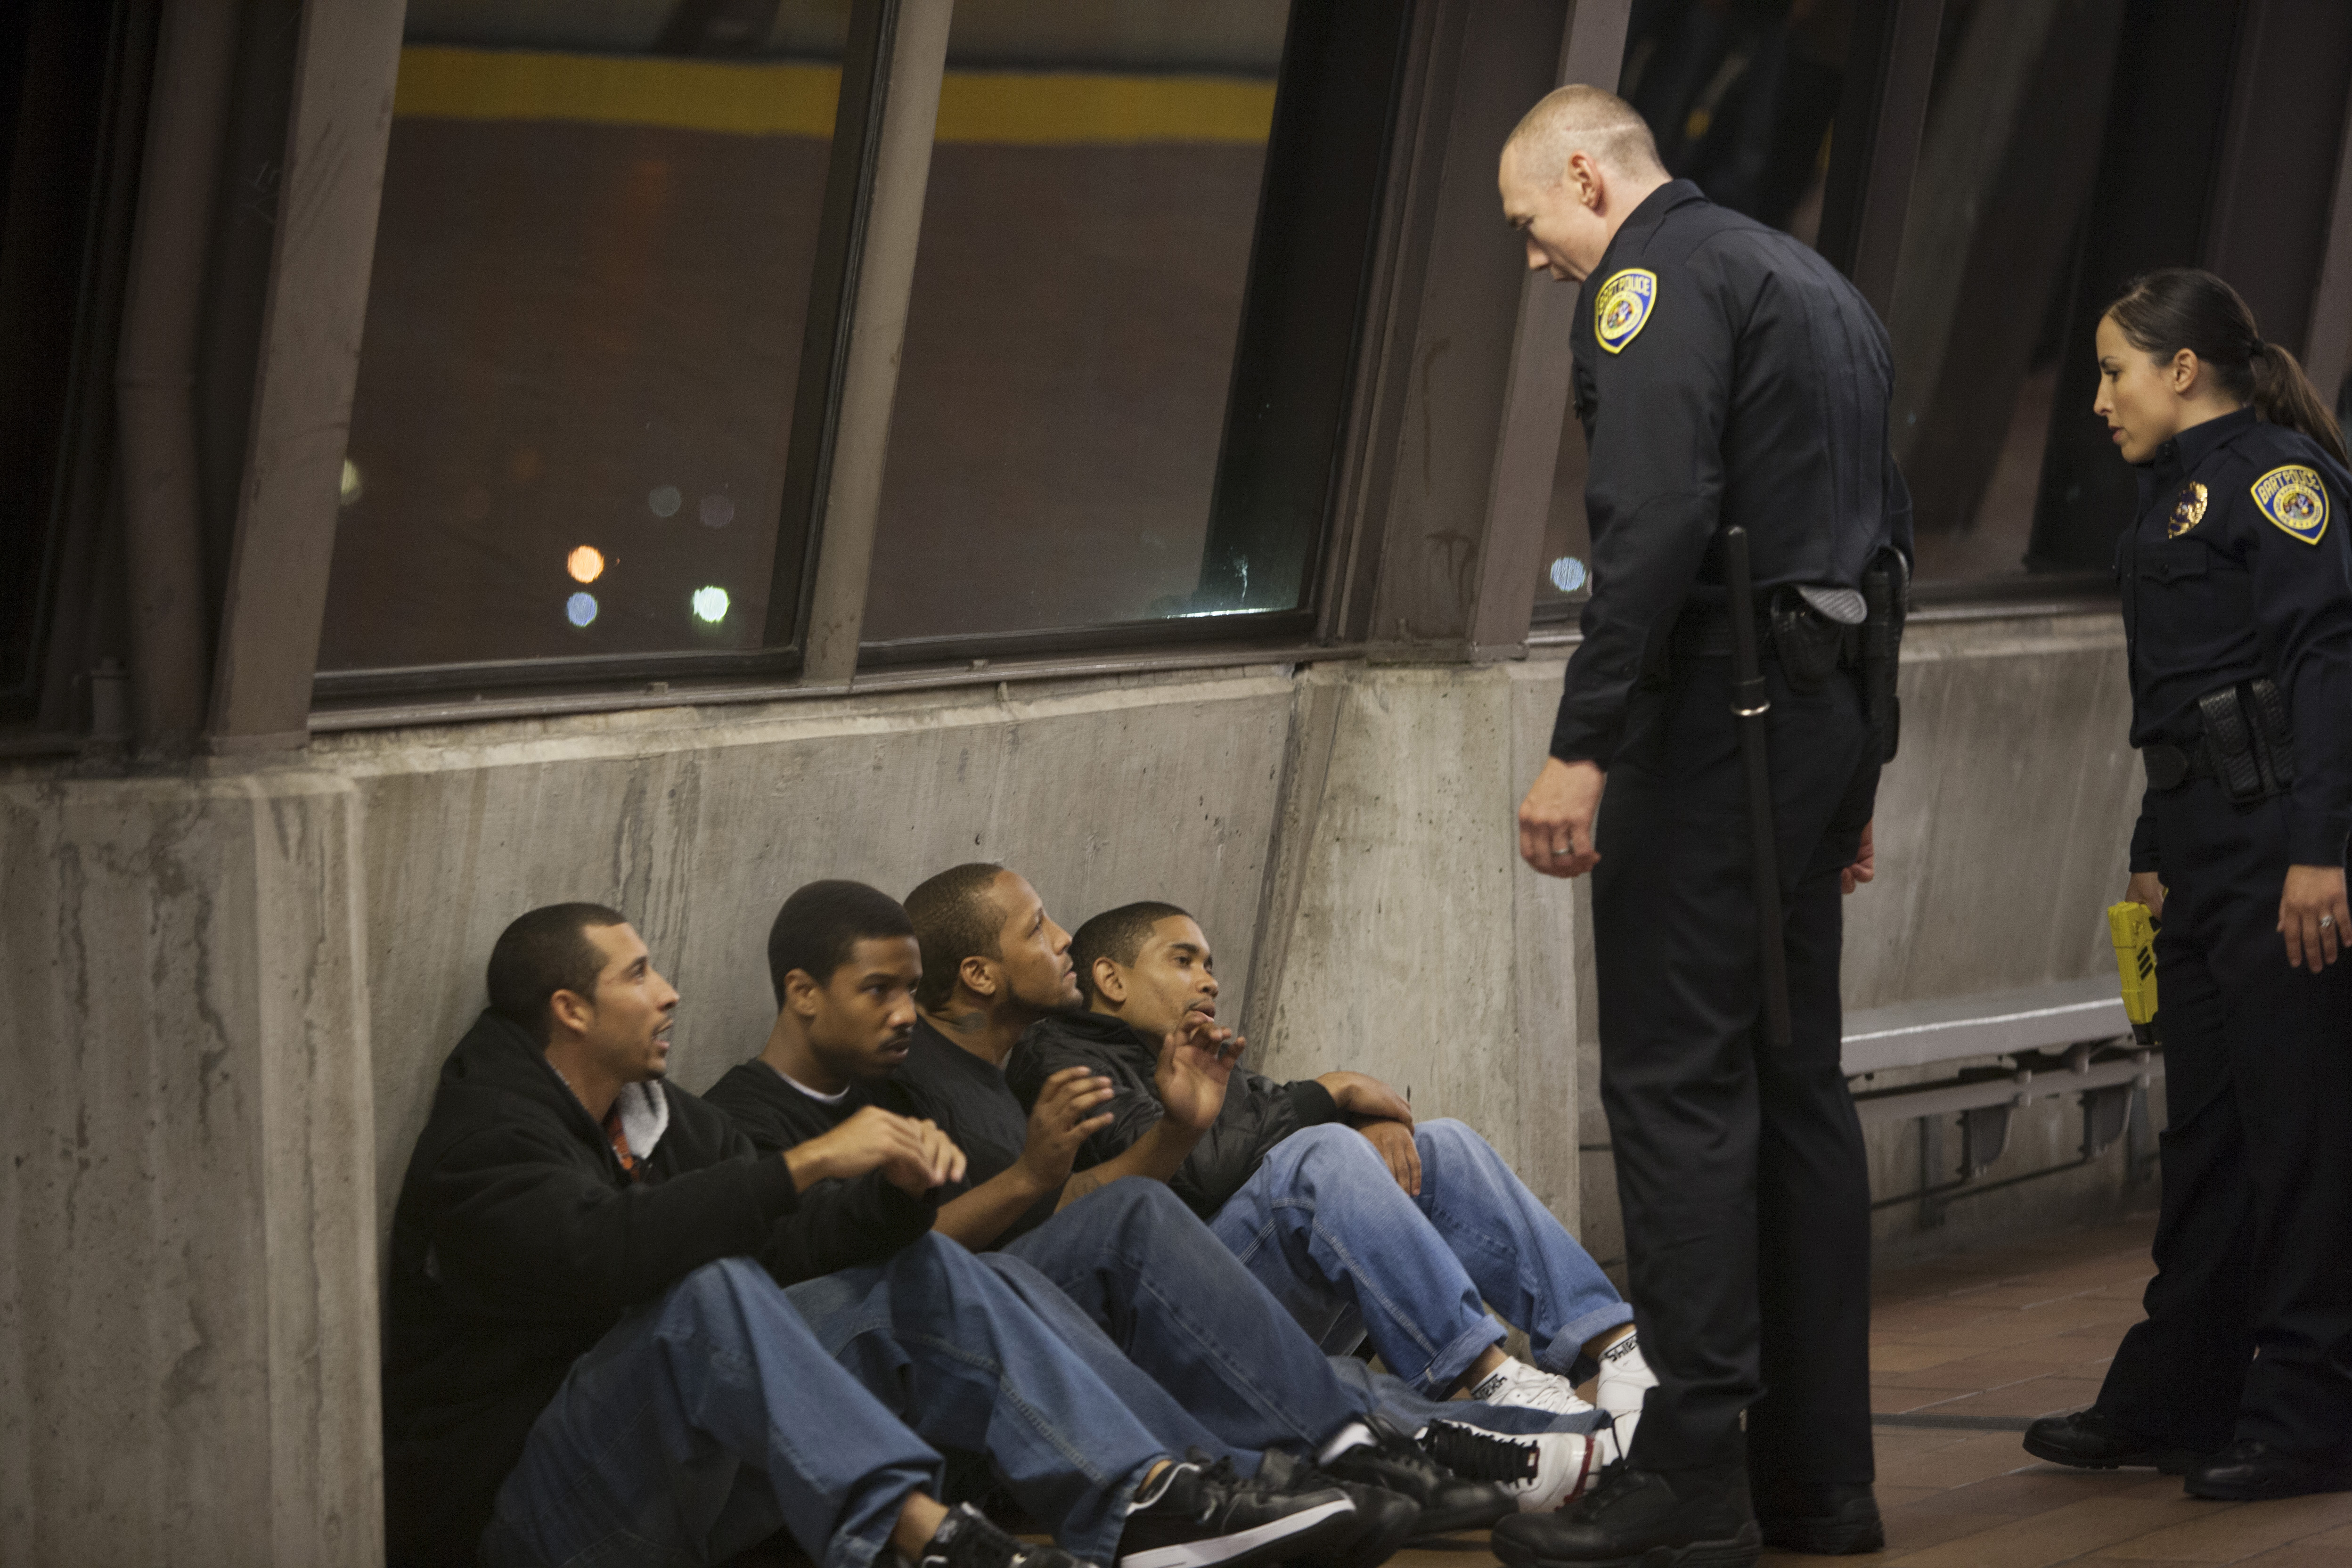 White cop leaning over young brown men in movie Fruitvale Station